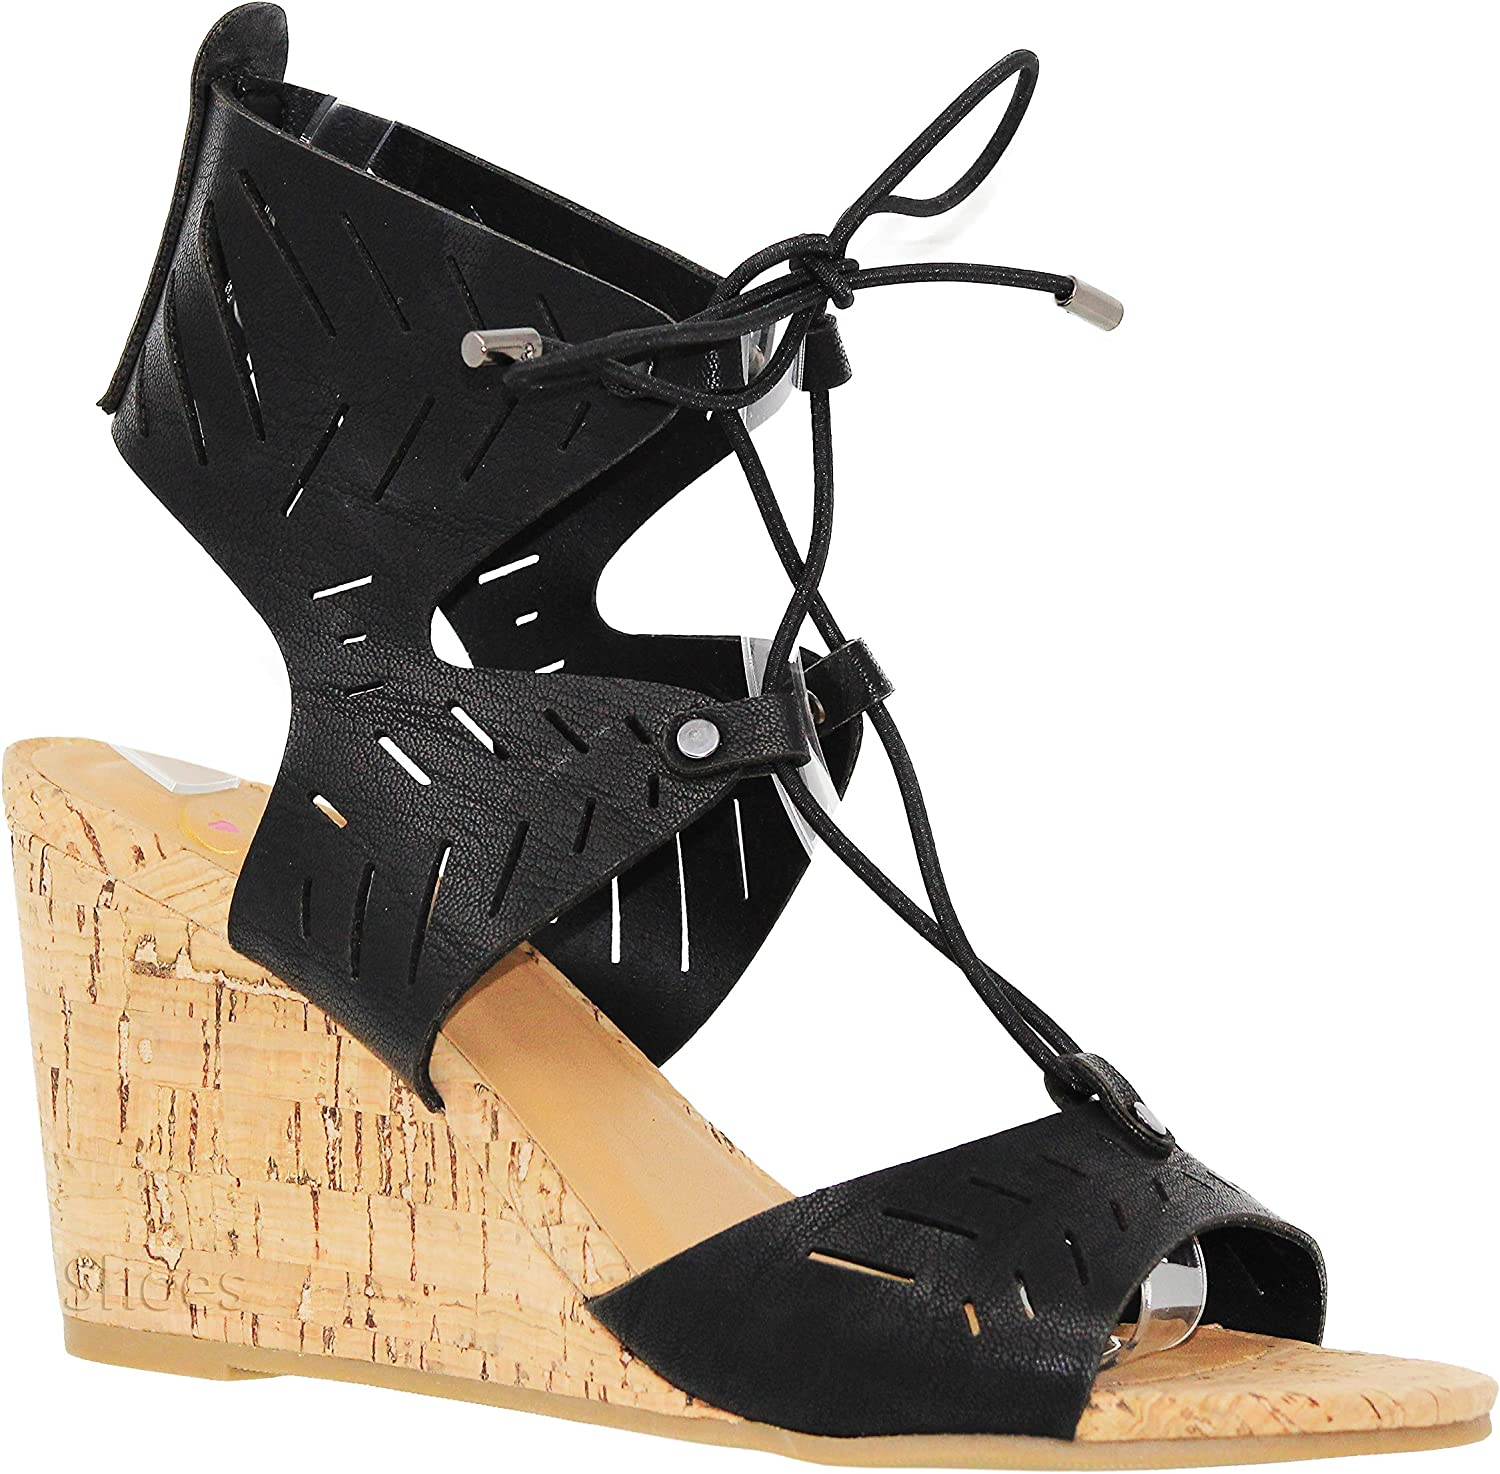 MVE shoes Women's Casual Peep Toe Mid Heel Wedges - Cute Open Ankle Lace up Sandals - Fashion Design Cutout Wedges-Sandals